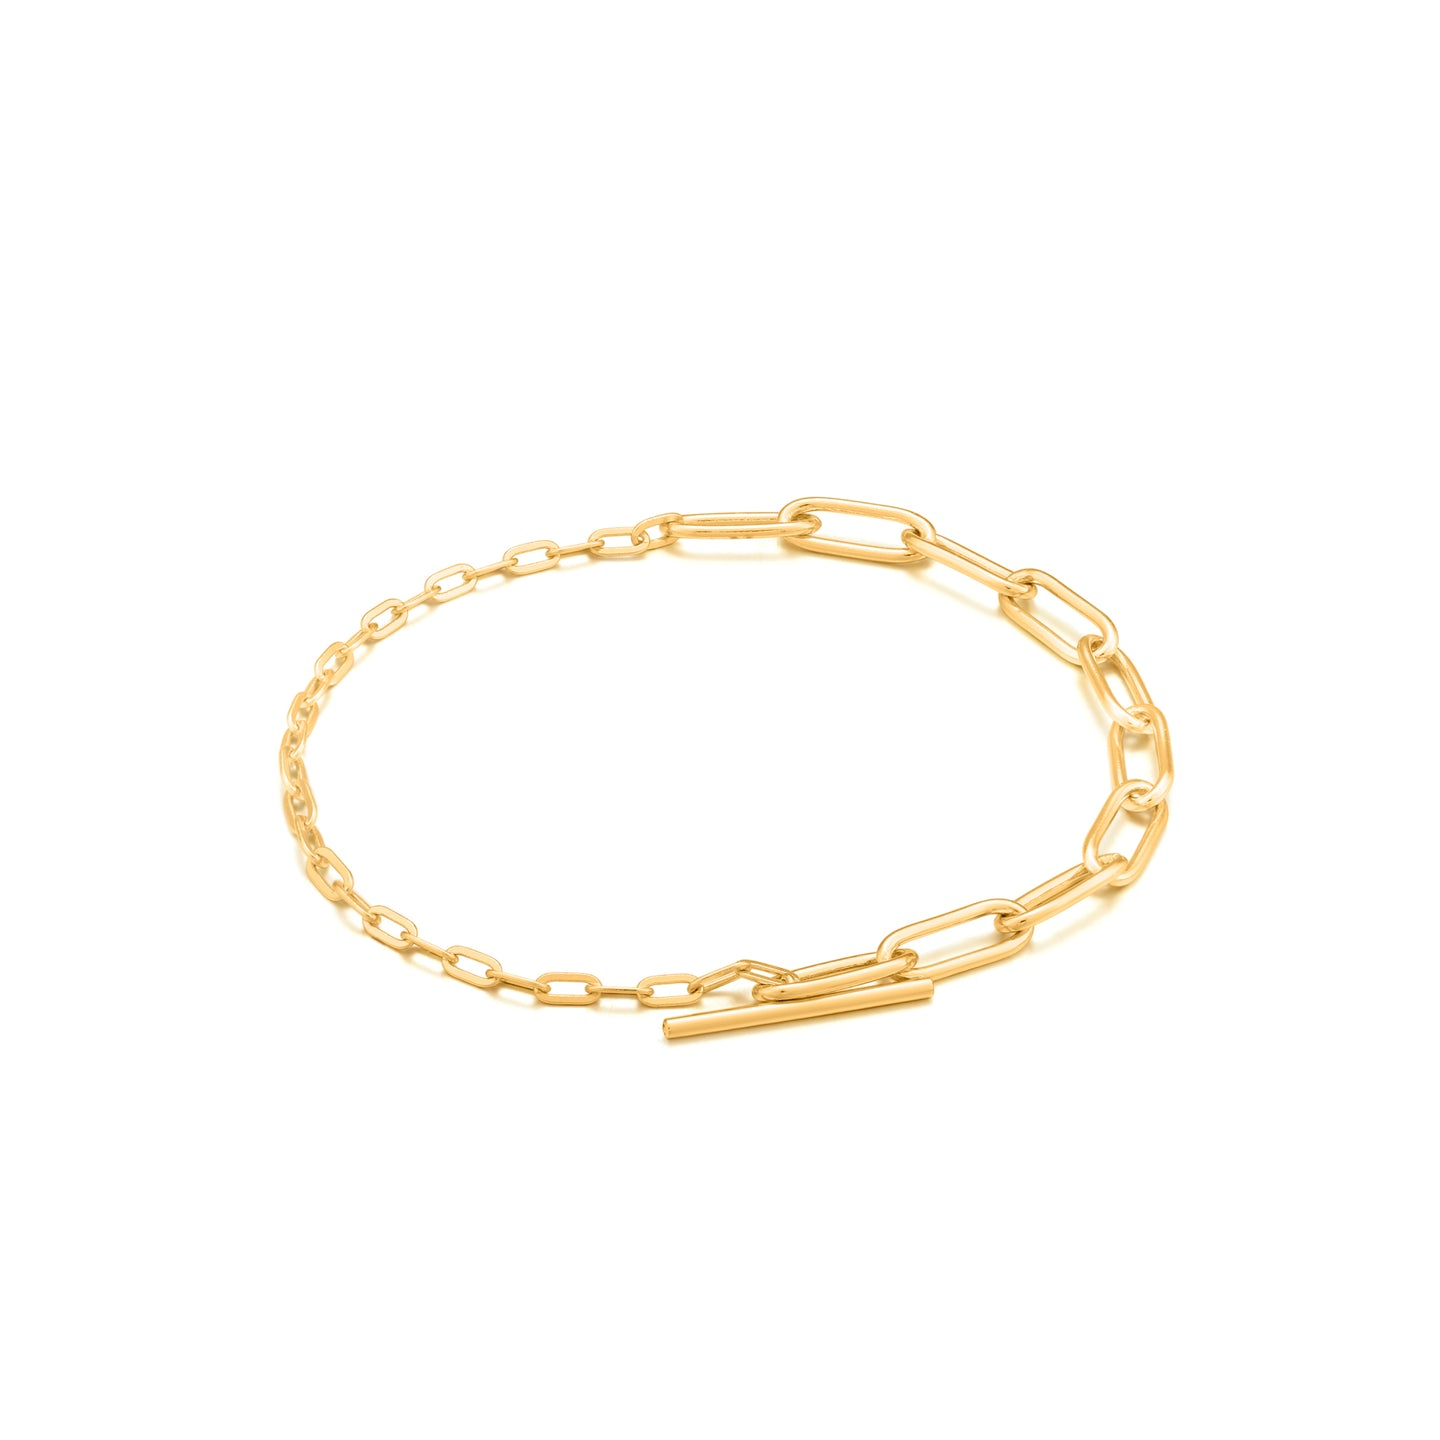 Gold Mixed Link T-bar Bracelet B021-02G